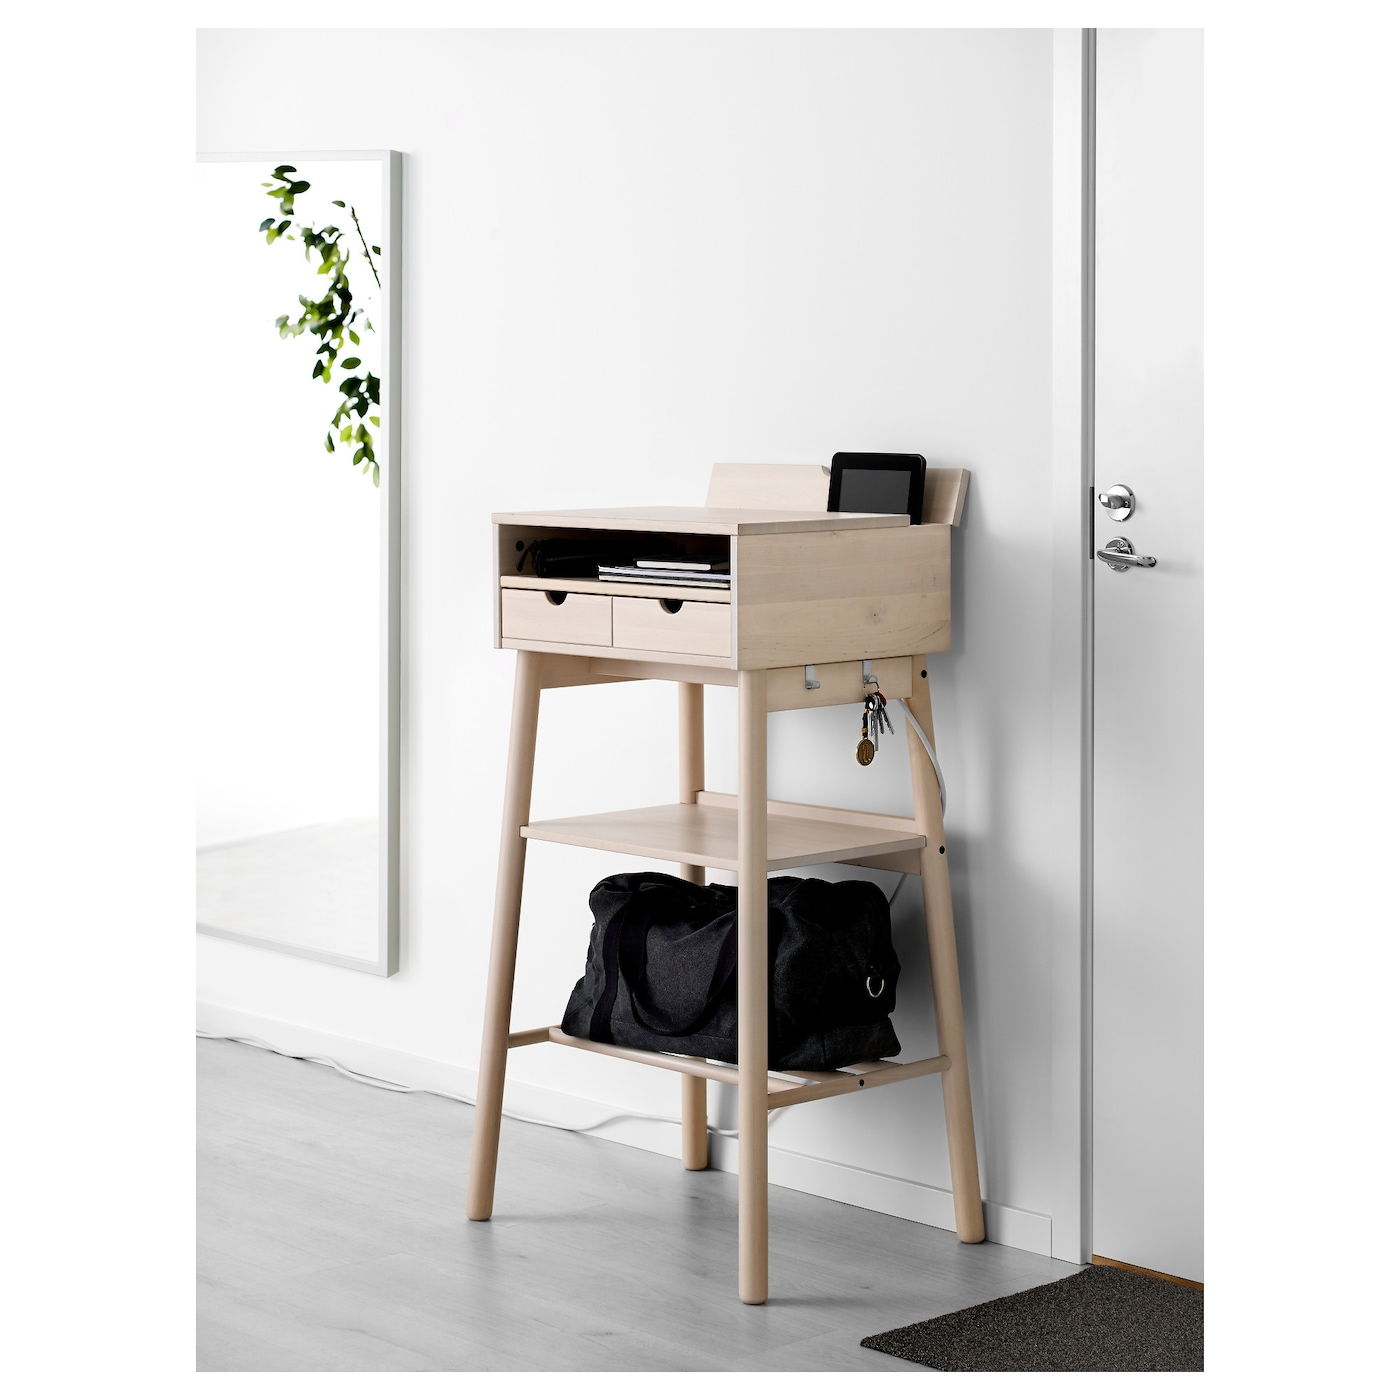 IKEA KNOTTEN Standing Desk You Can Hang Keys And Other Smaller Items On The  Hooks.